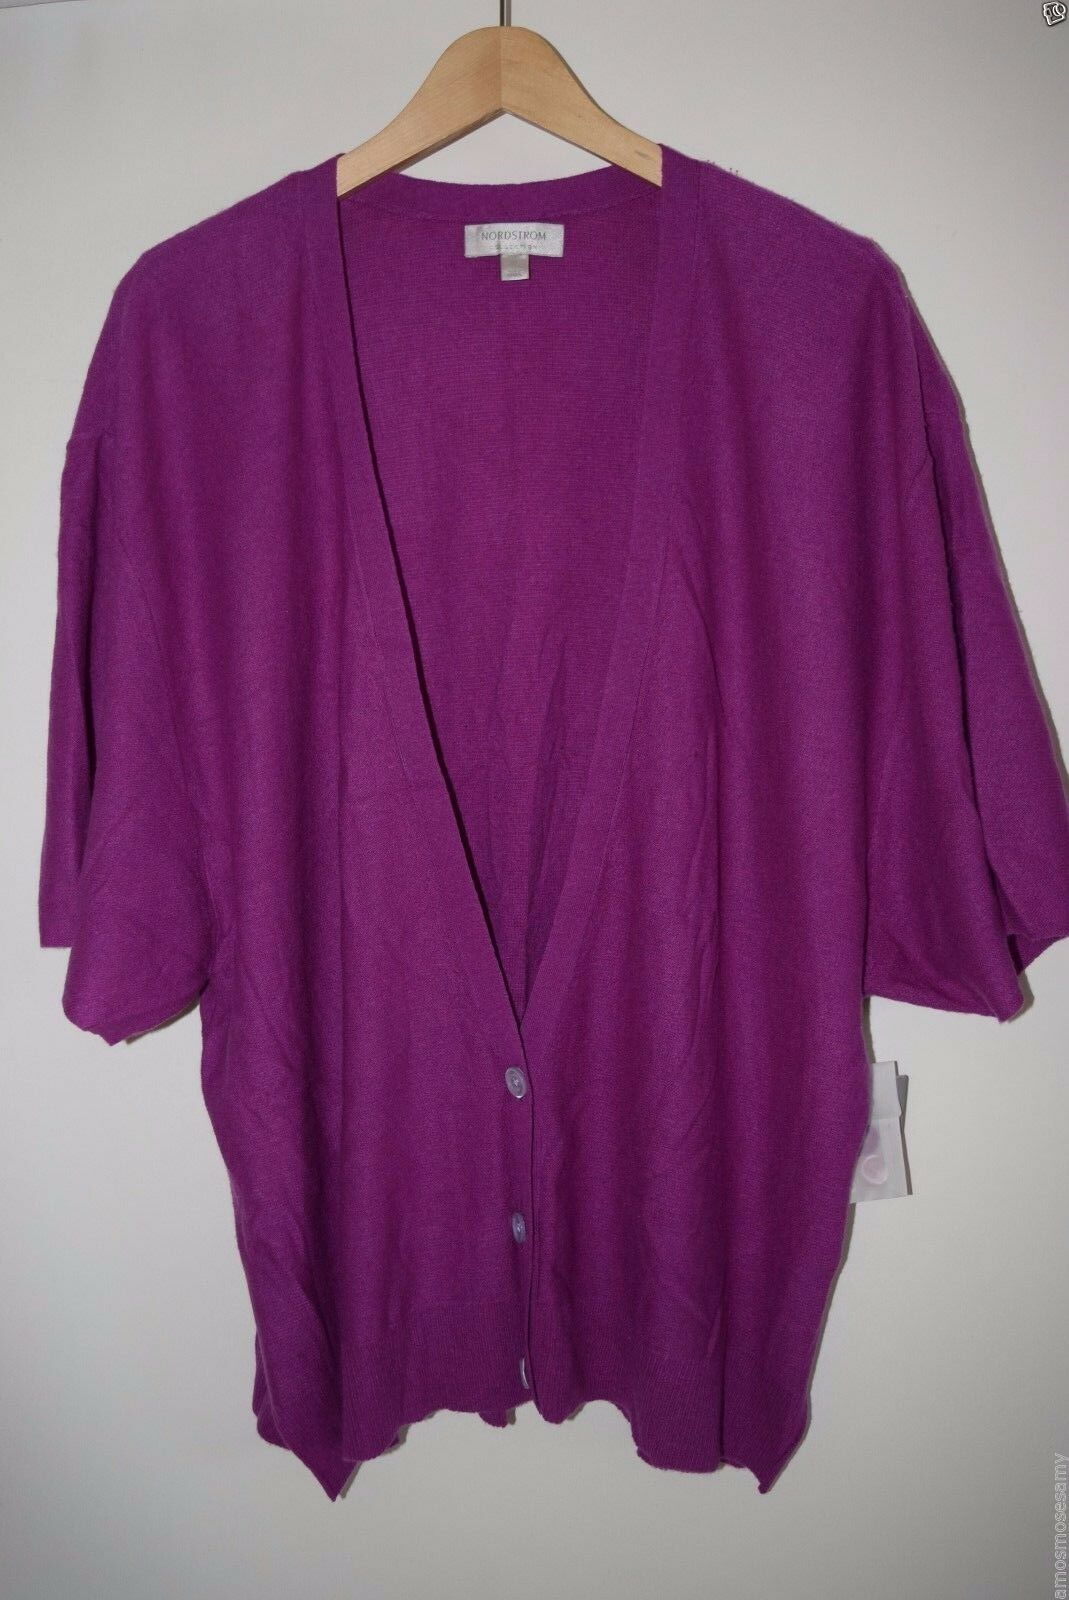 Nordstrom Collection Womens Magenta Cashmere Poncho Cardigan ...